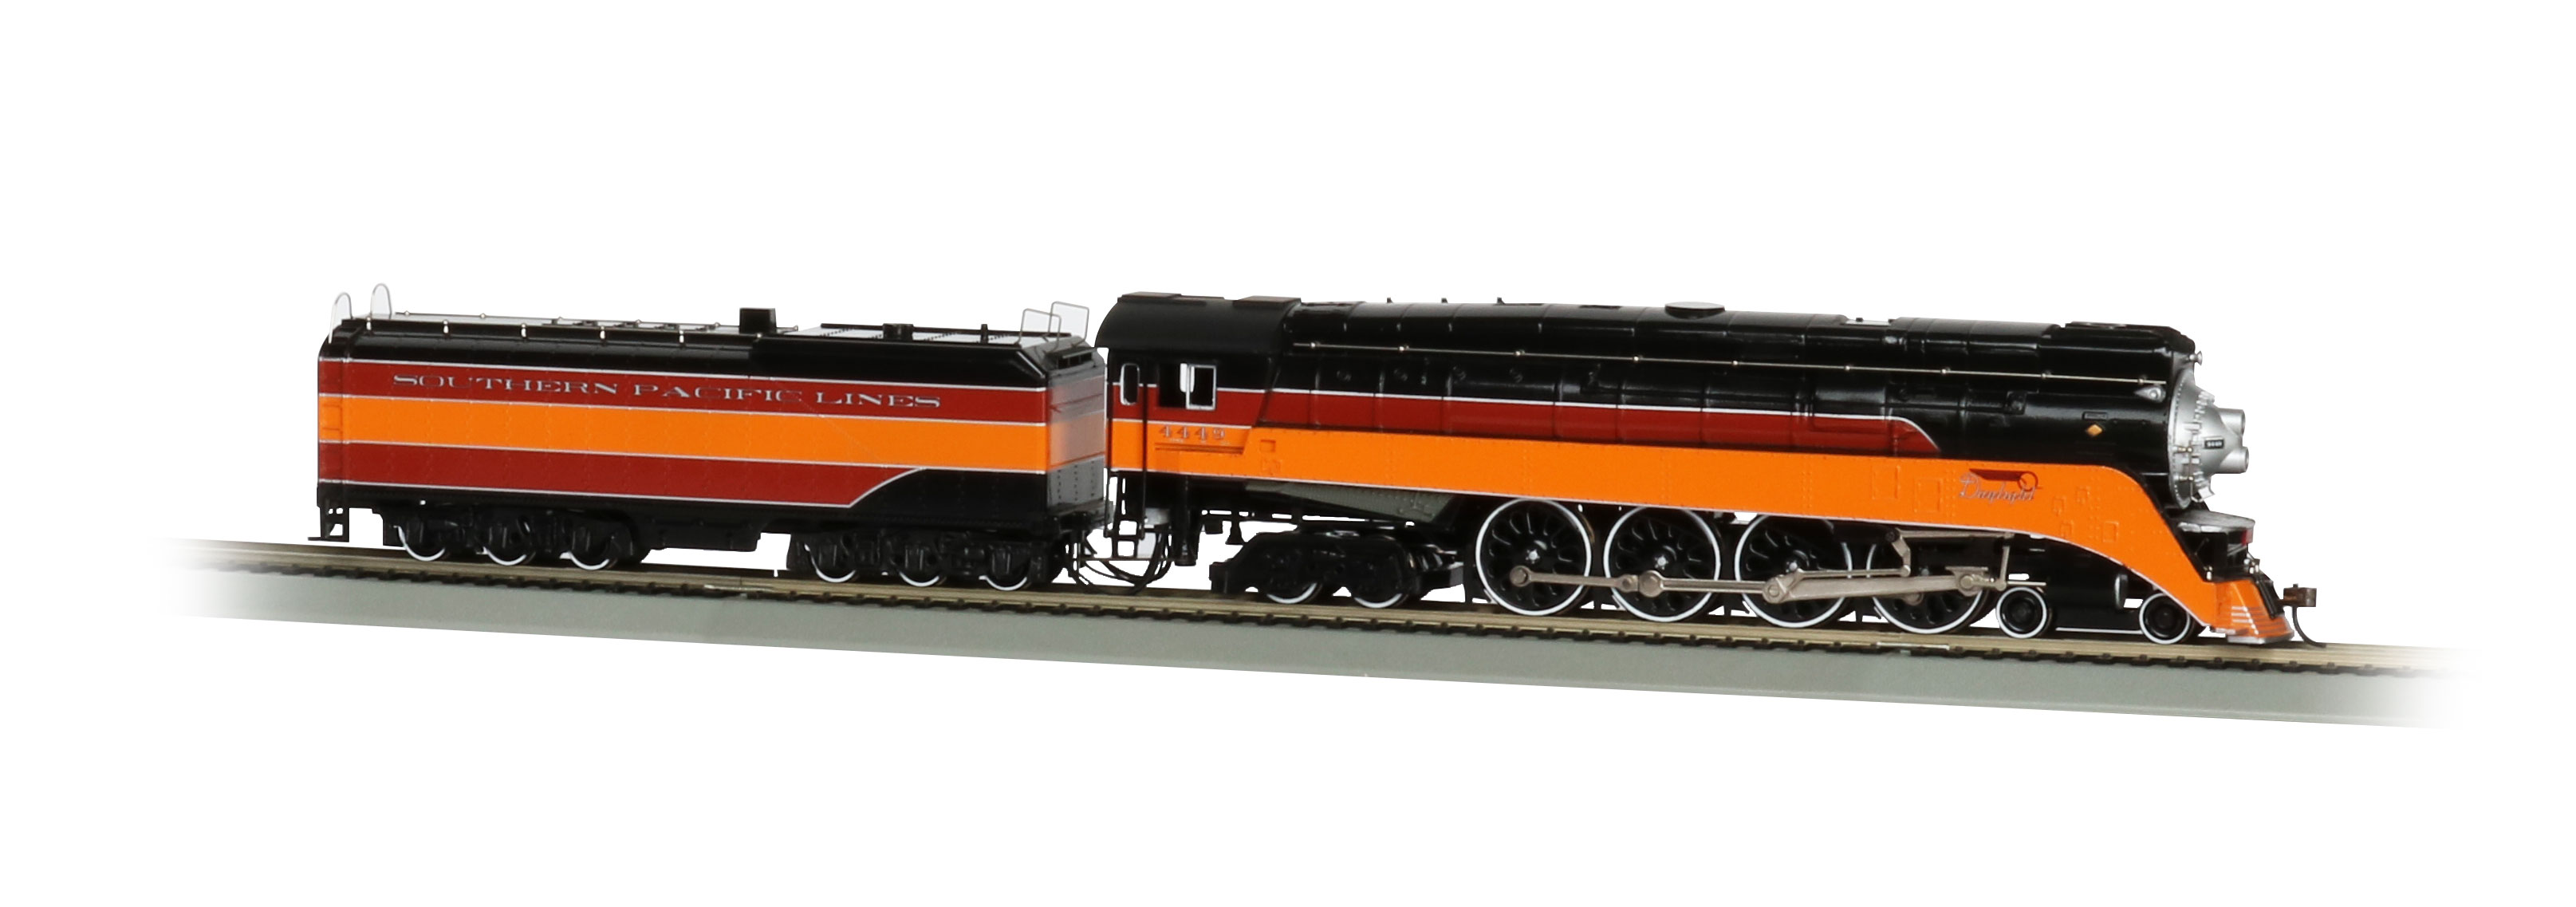 SP™ Daylight #4449 RAILFAN - GS4 4-8-4 - DCC SOUND VALUE (HO)